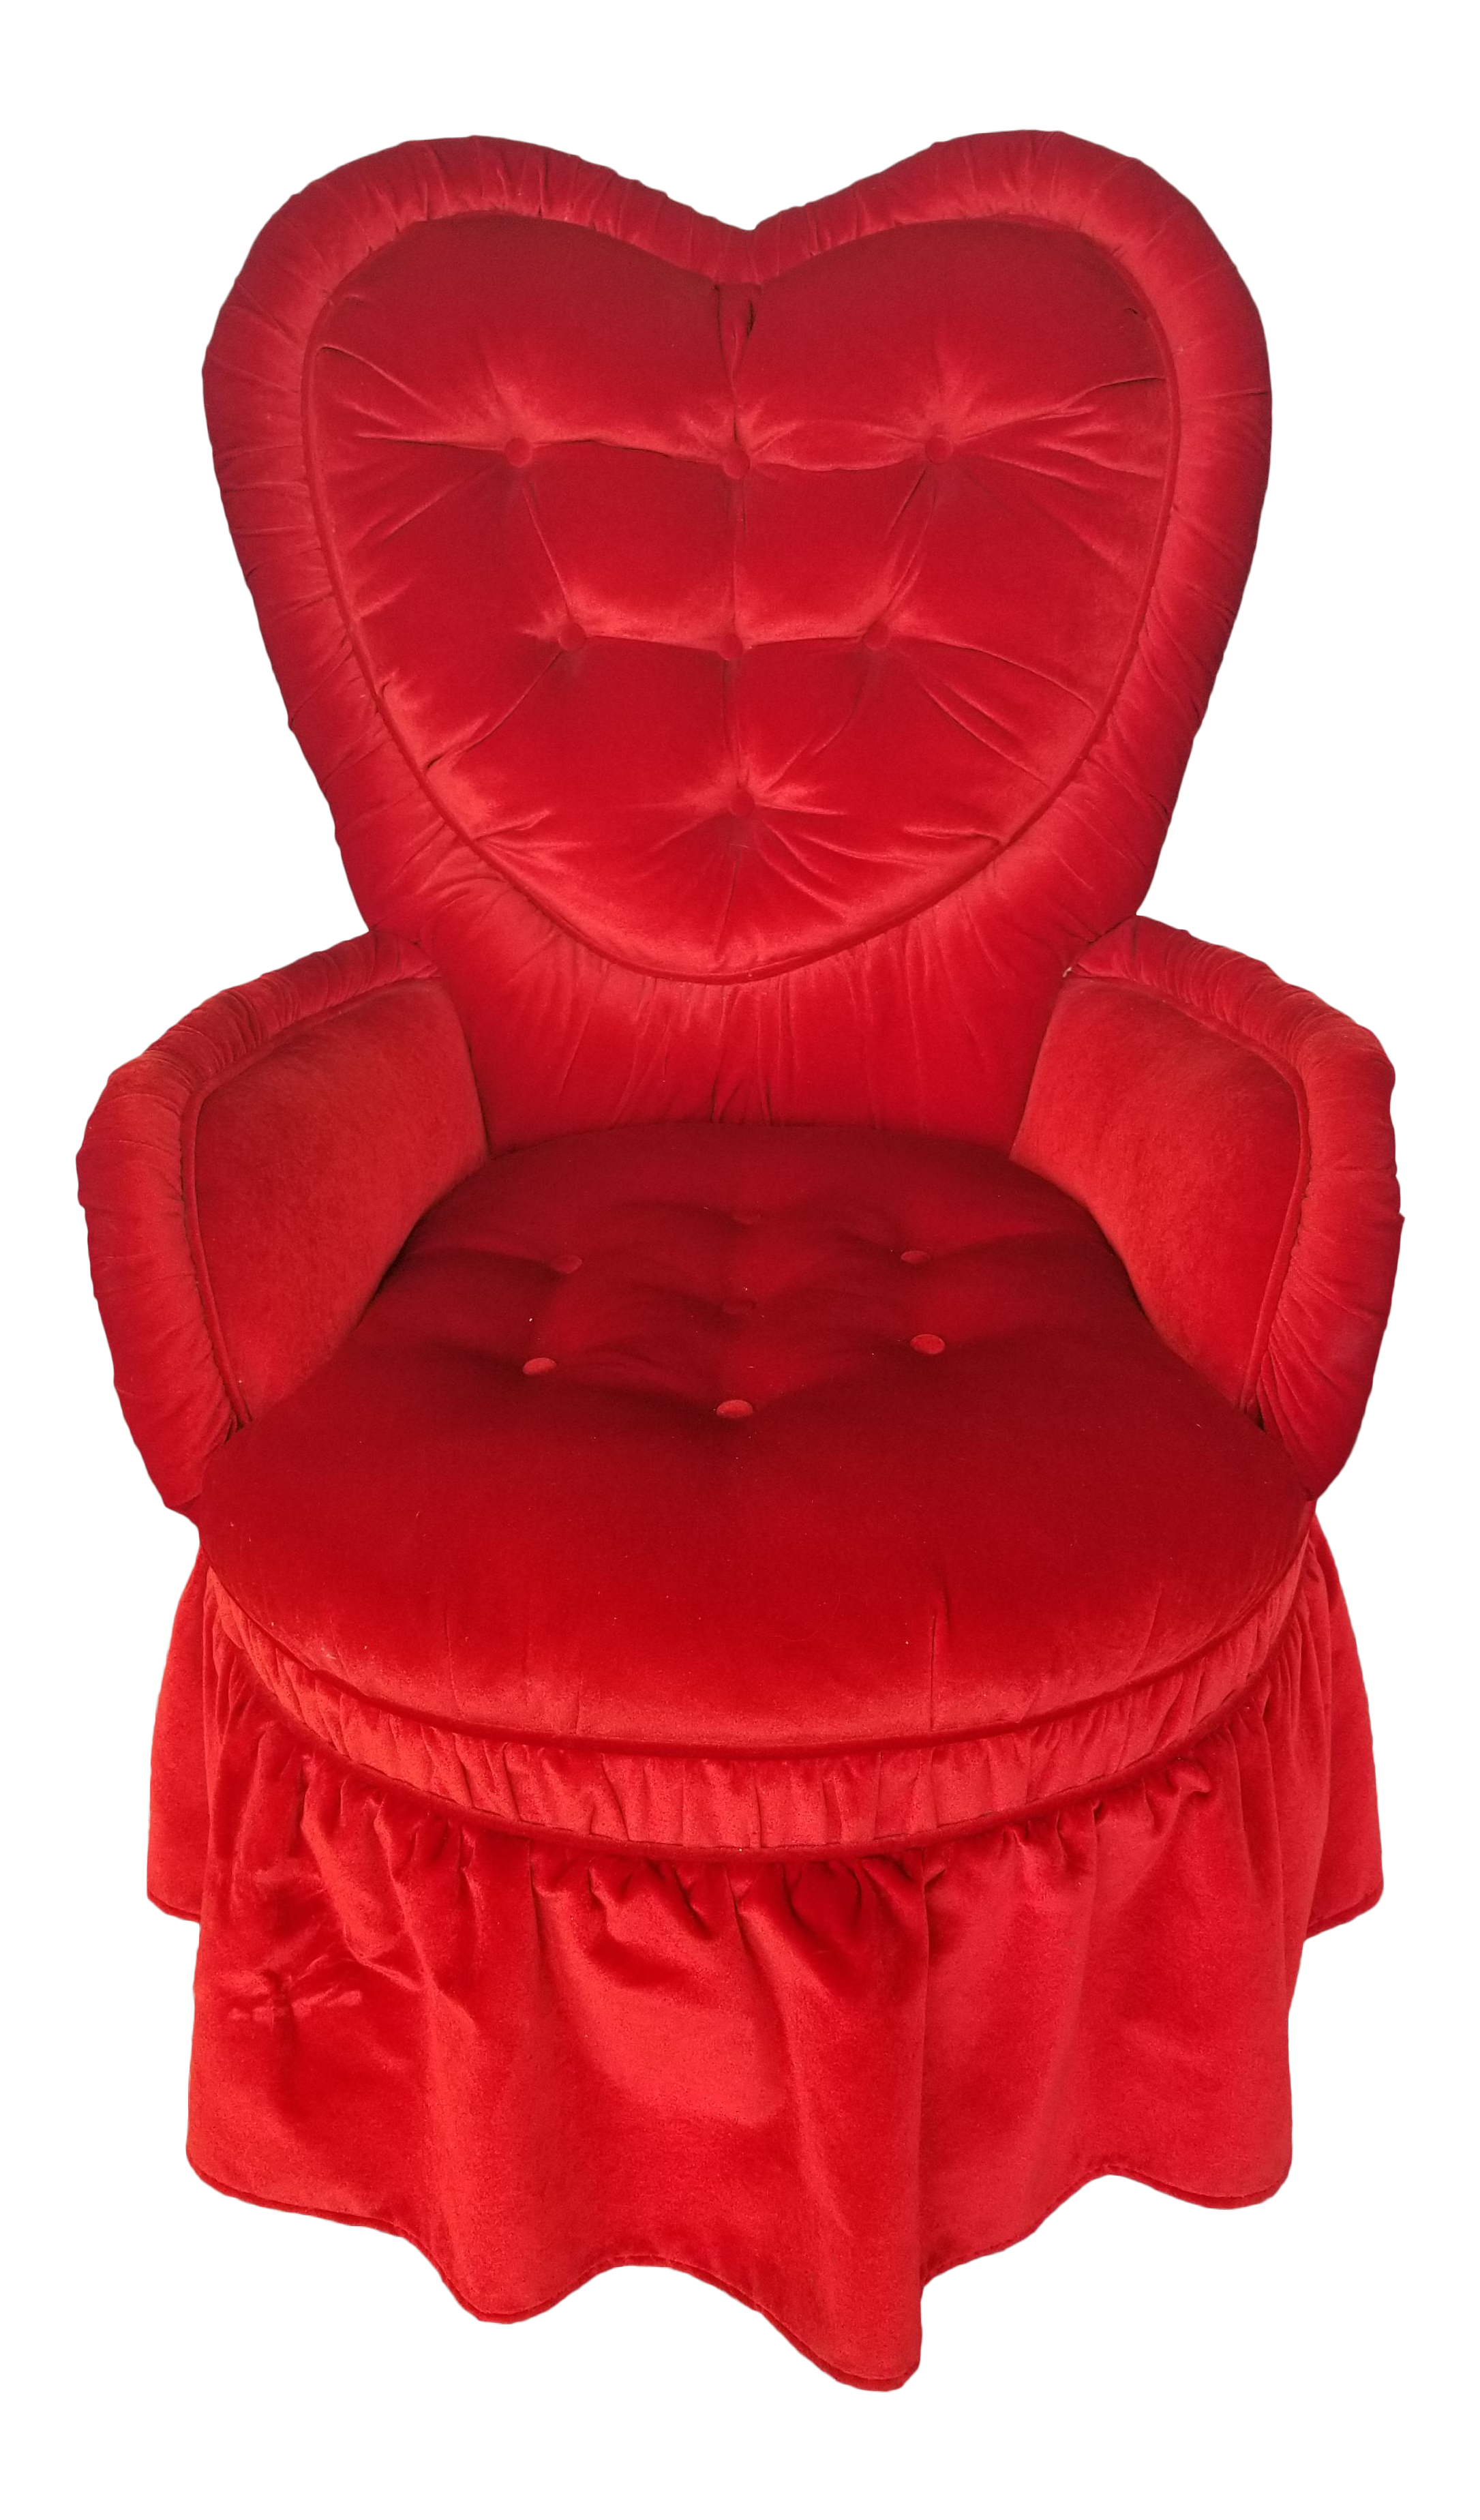 Vintage Heart Shaped Red Boudoir Chair Chairish